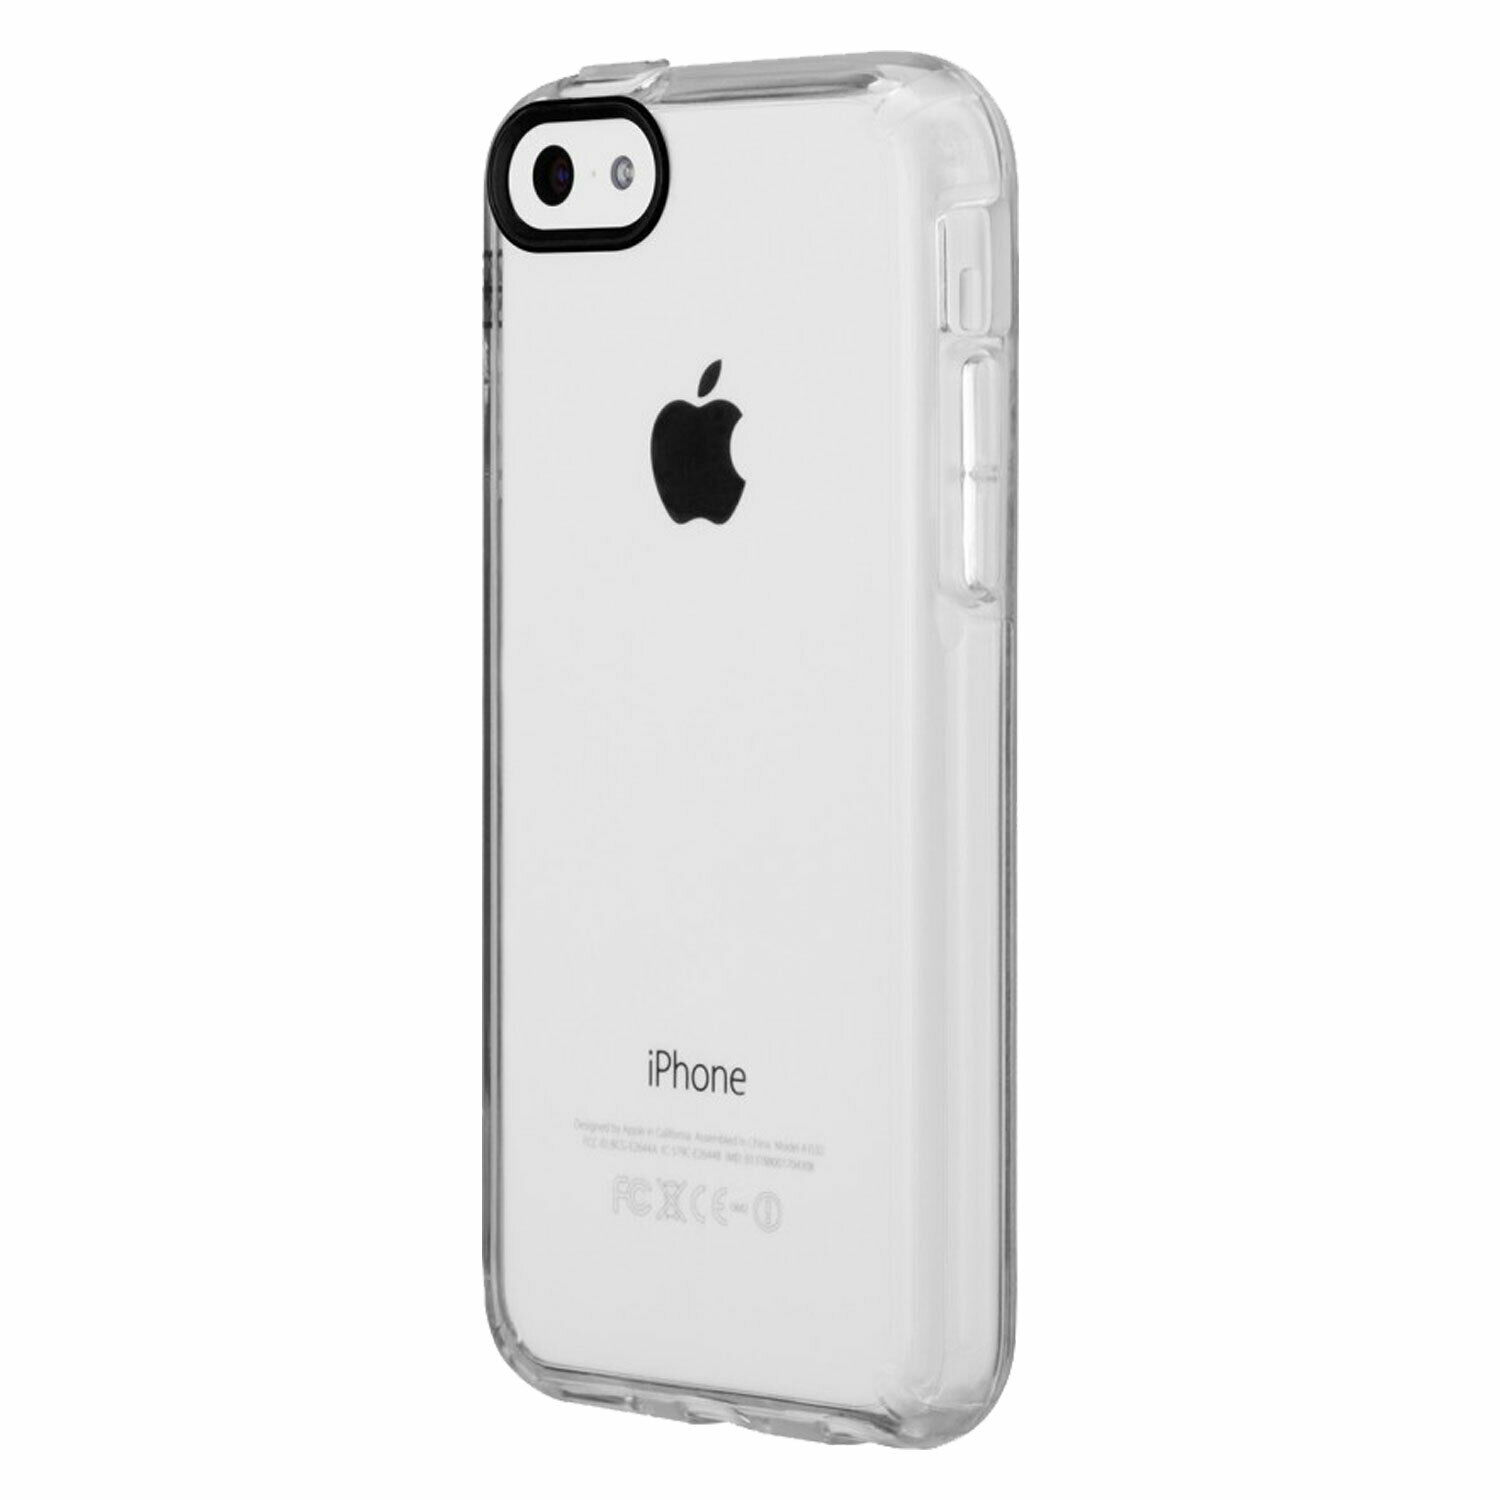 Speck Gemshell Case iPhone 5c Clear 848709007872 | eBay